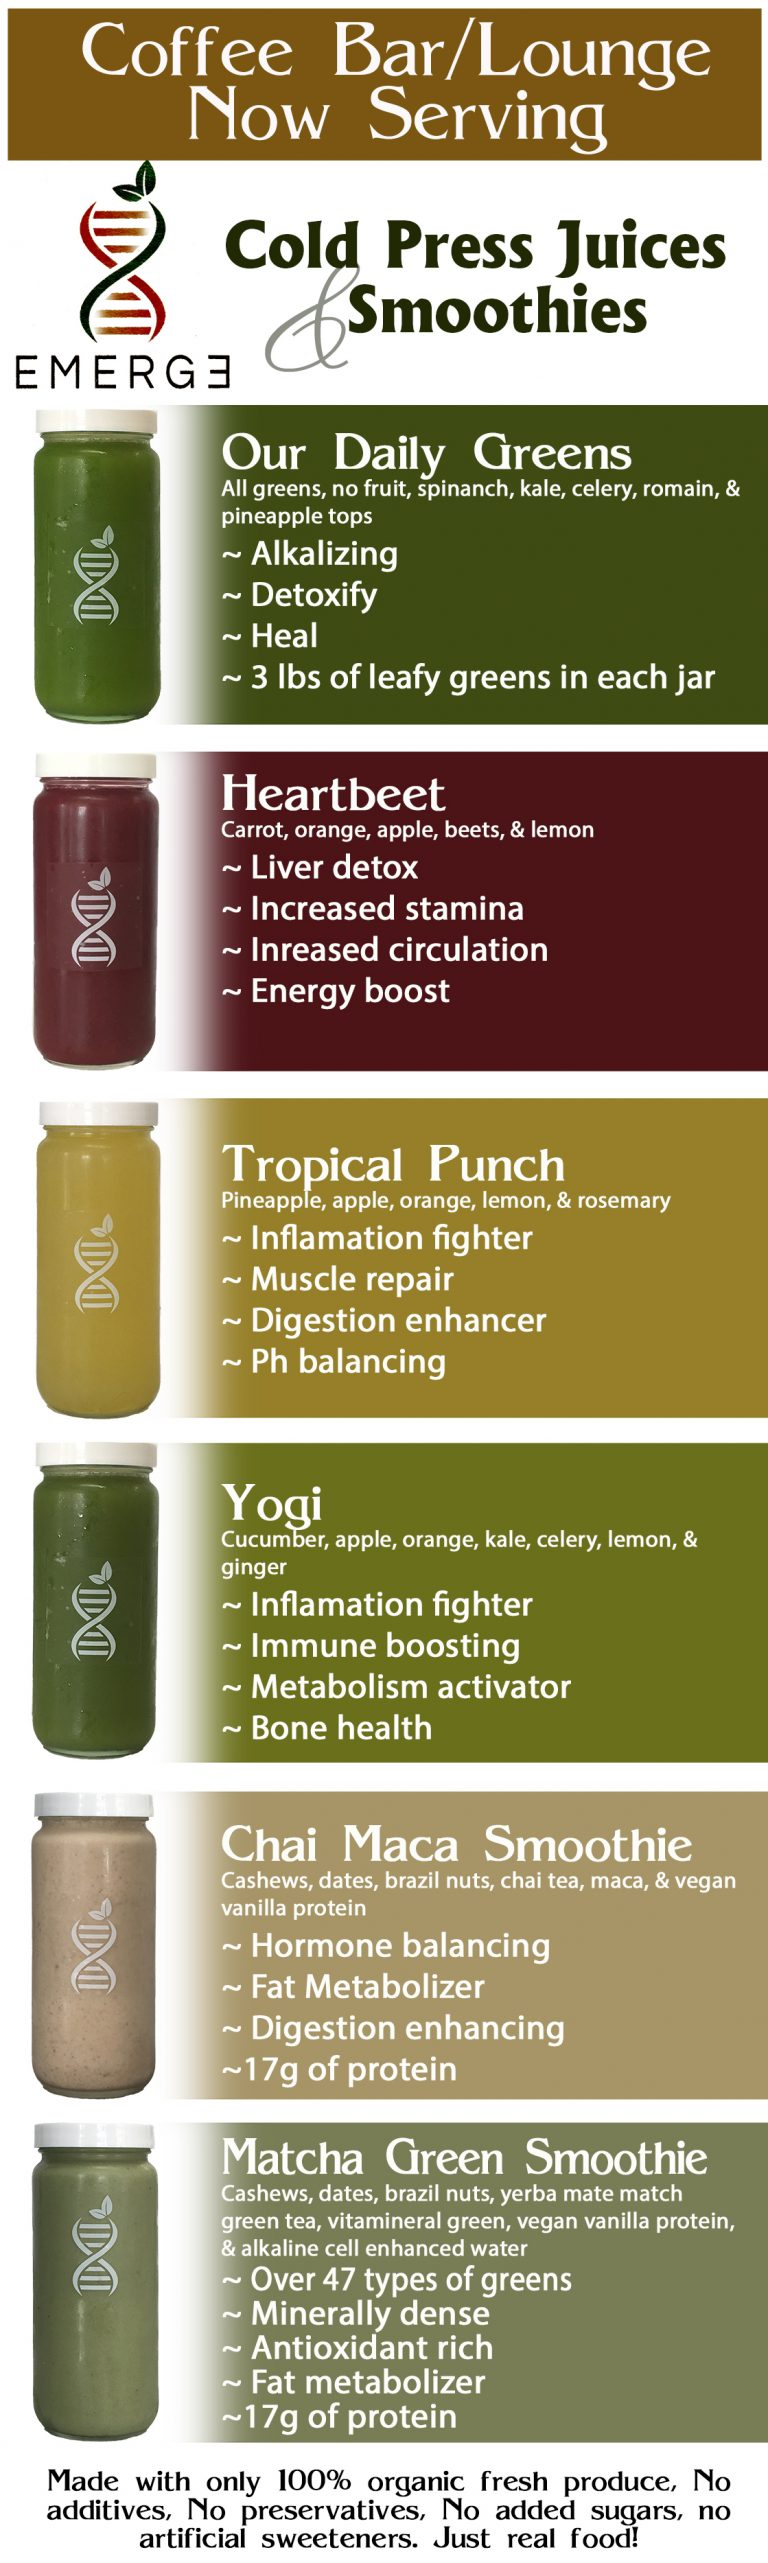 Red's Coffee Bar/Lounge now serving Emerge Cold Press Juices and Smoothies.